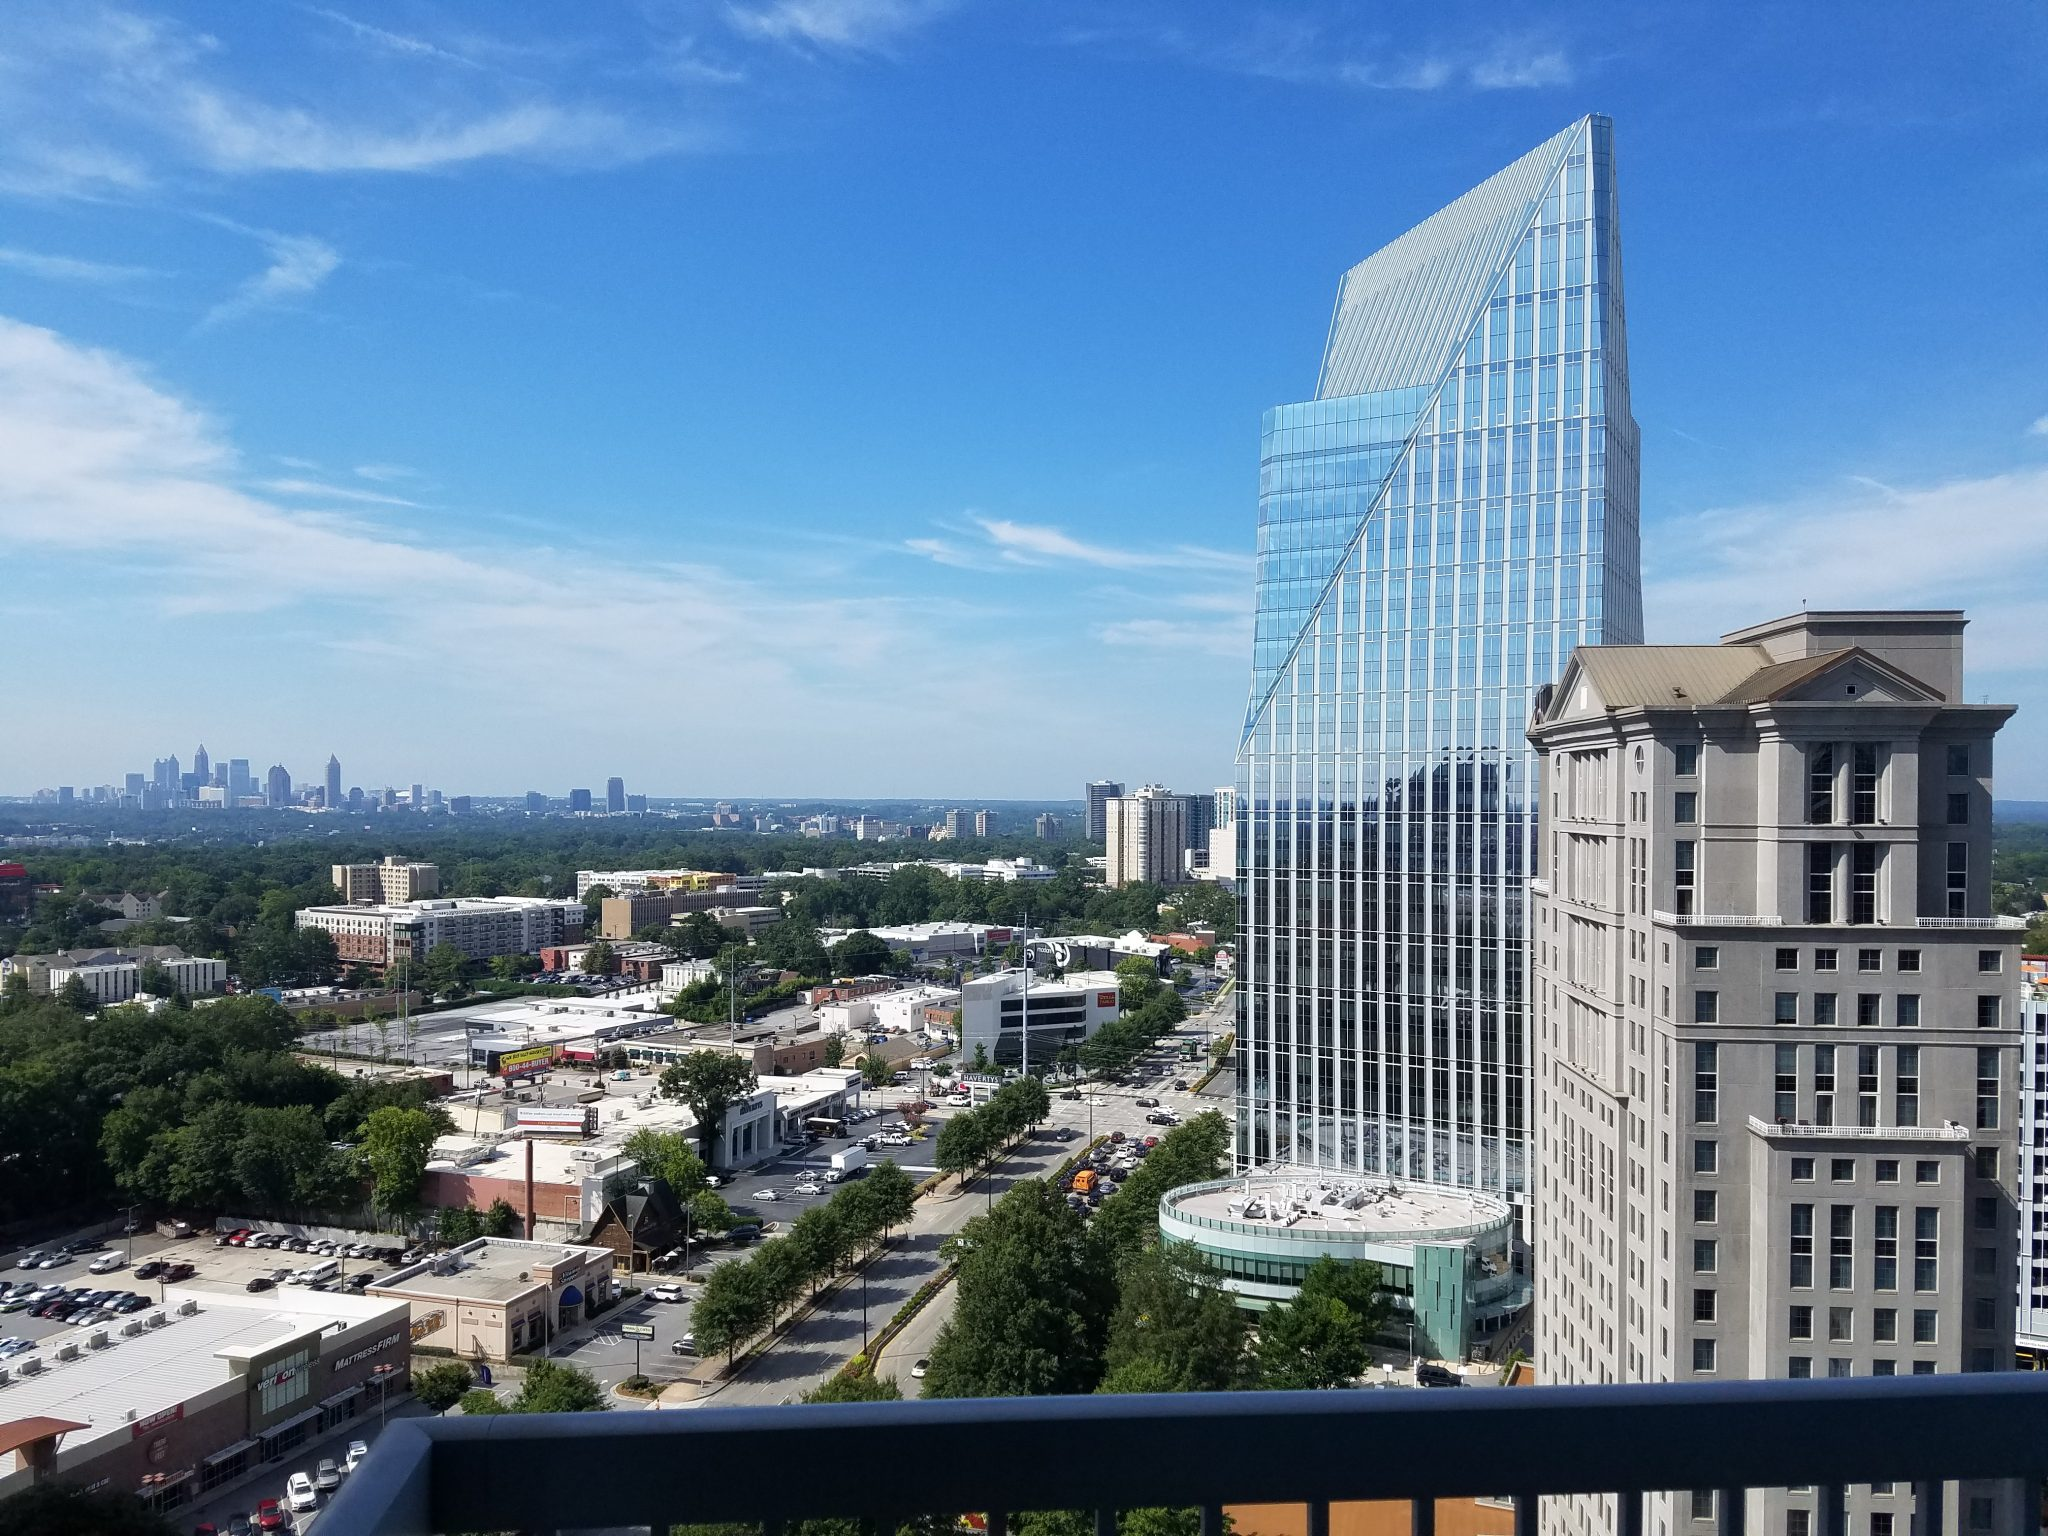 Homes for Sale, View of Downtown Atlanta from 21st floor The Realm Condominiums in Buckhead Atlanta by Shawn Penoyer - Keller Williams